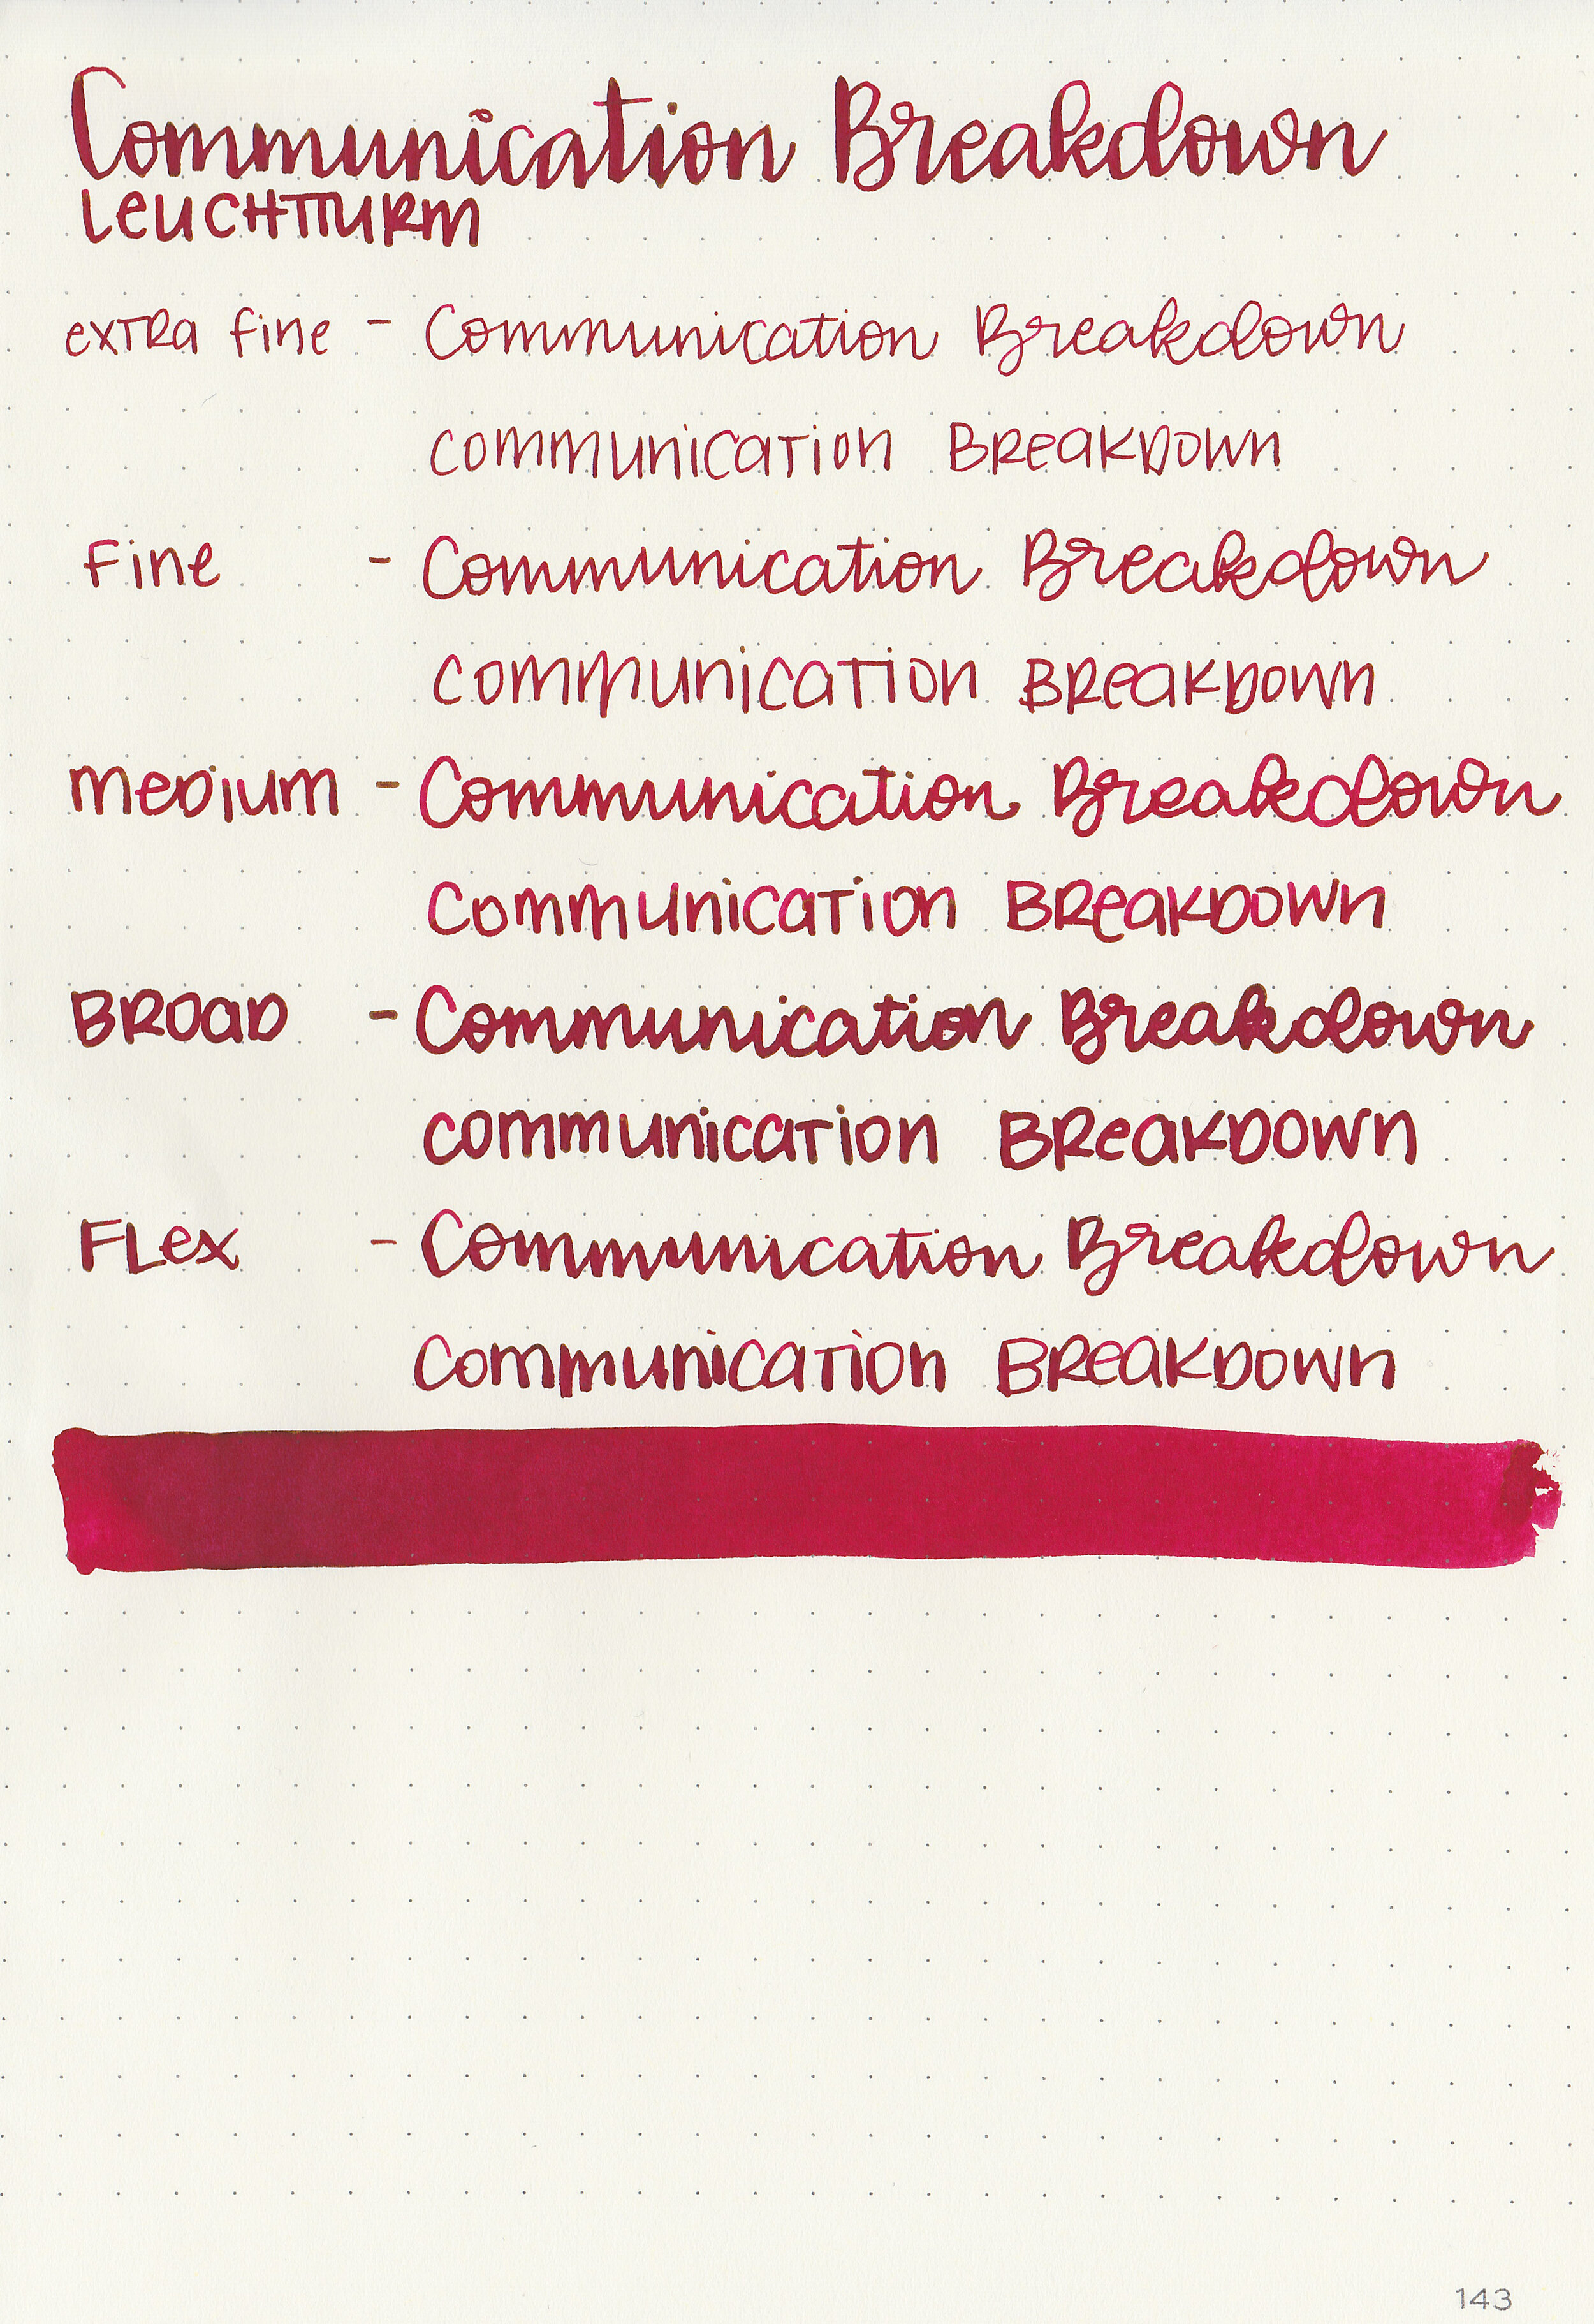 d-communication-breakdown-7.jpg